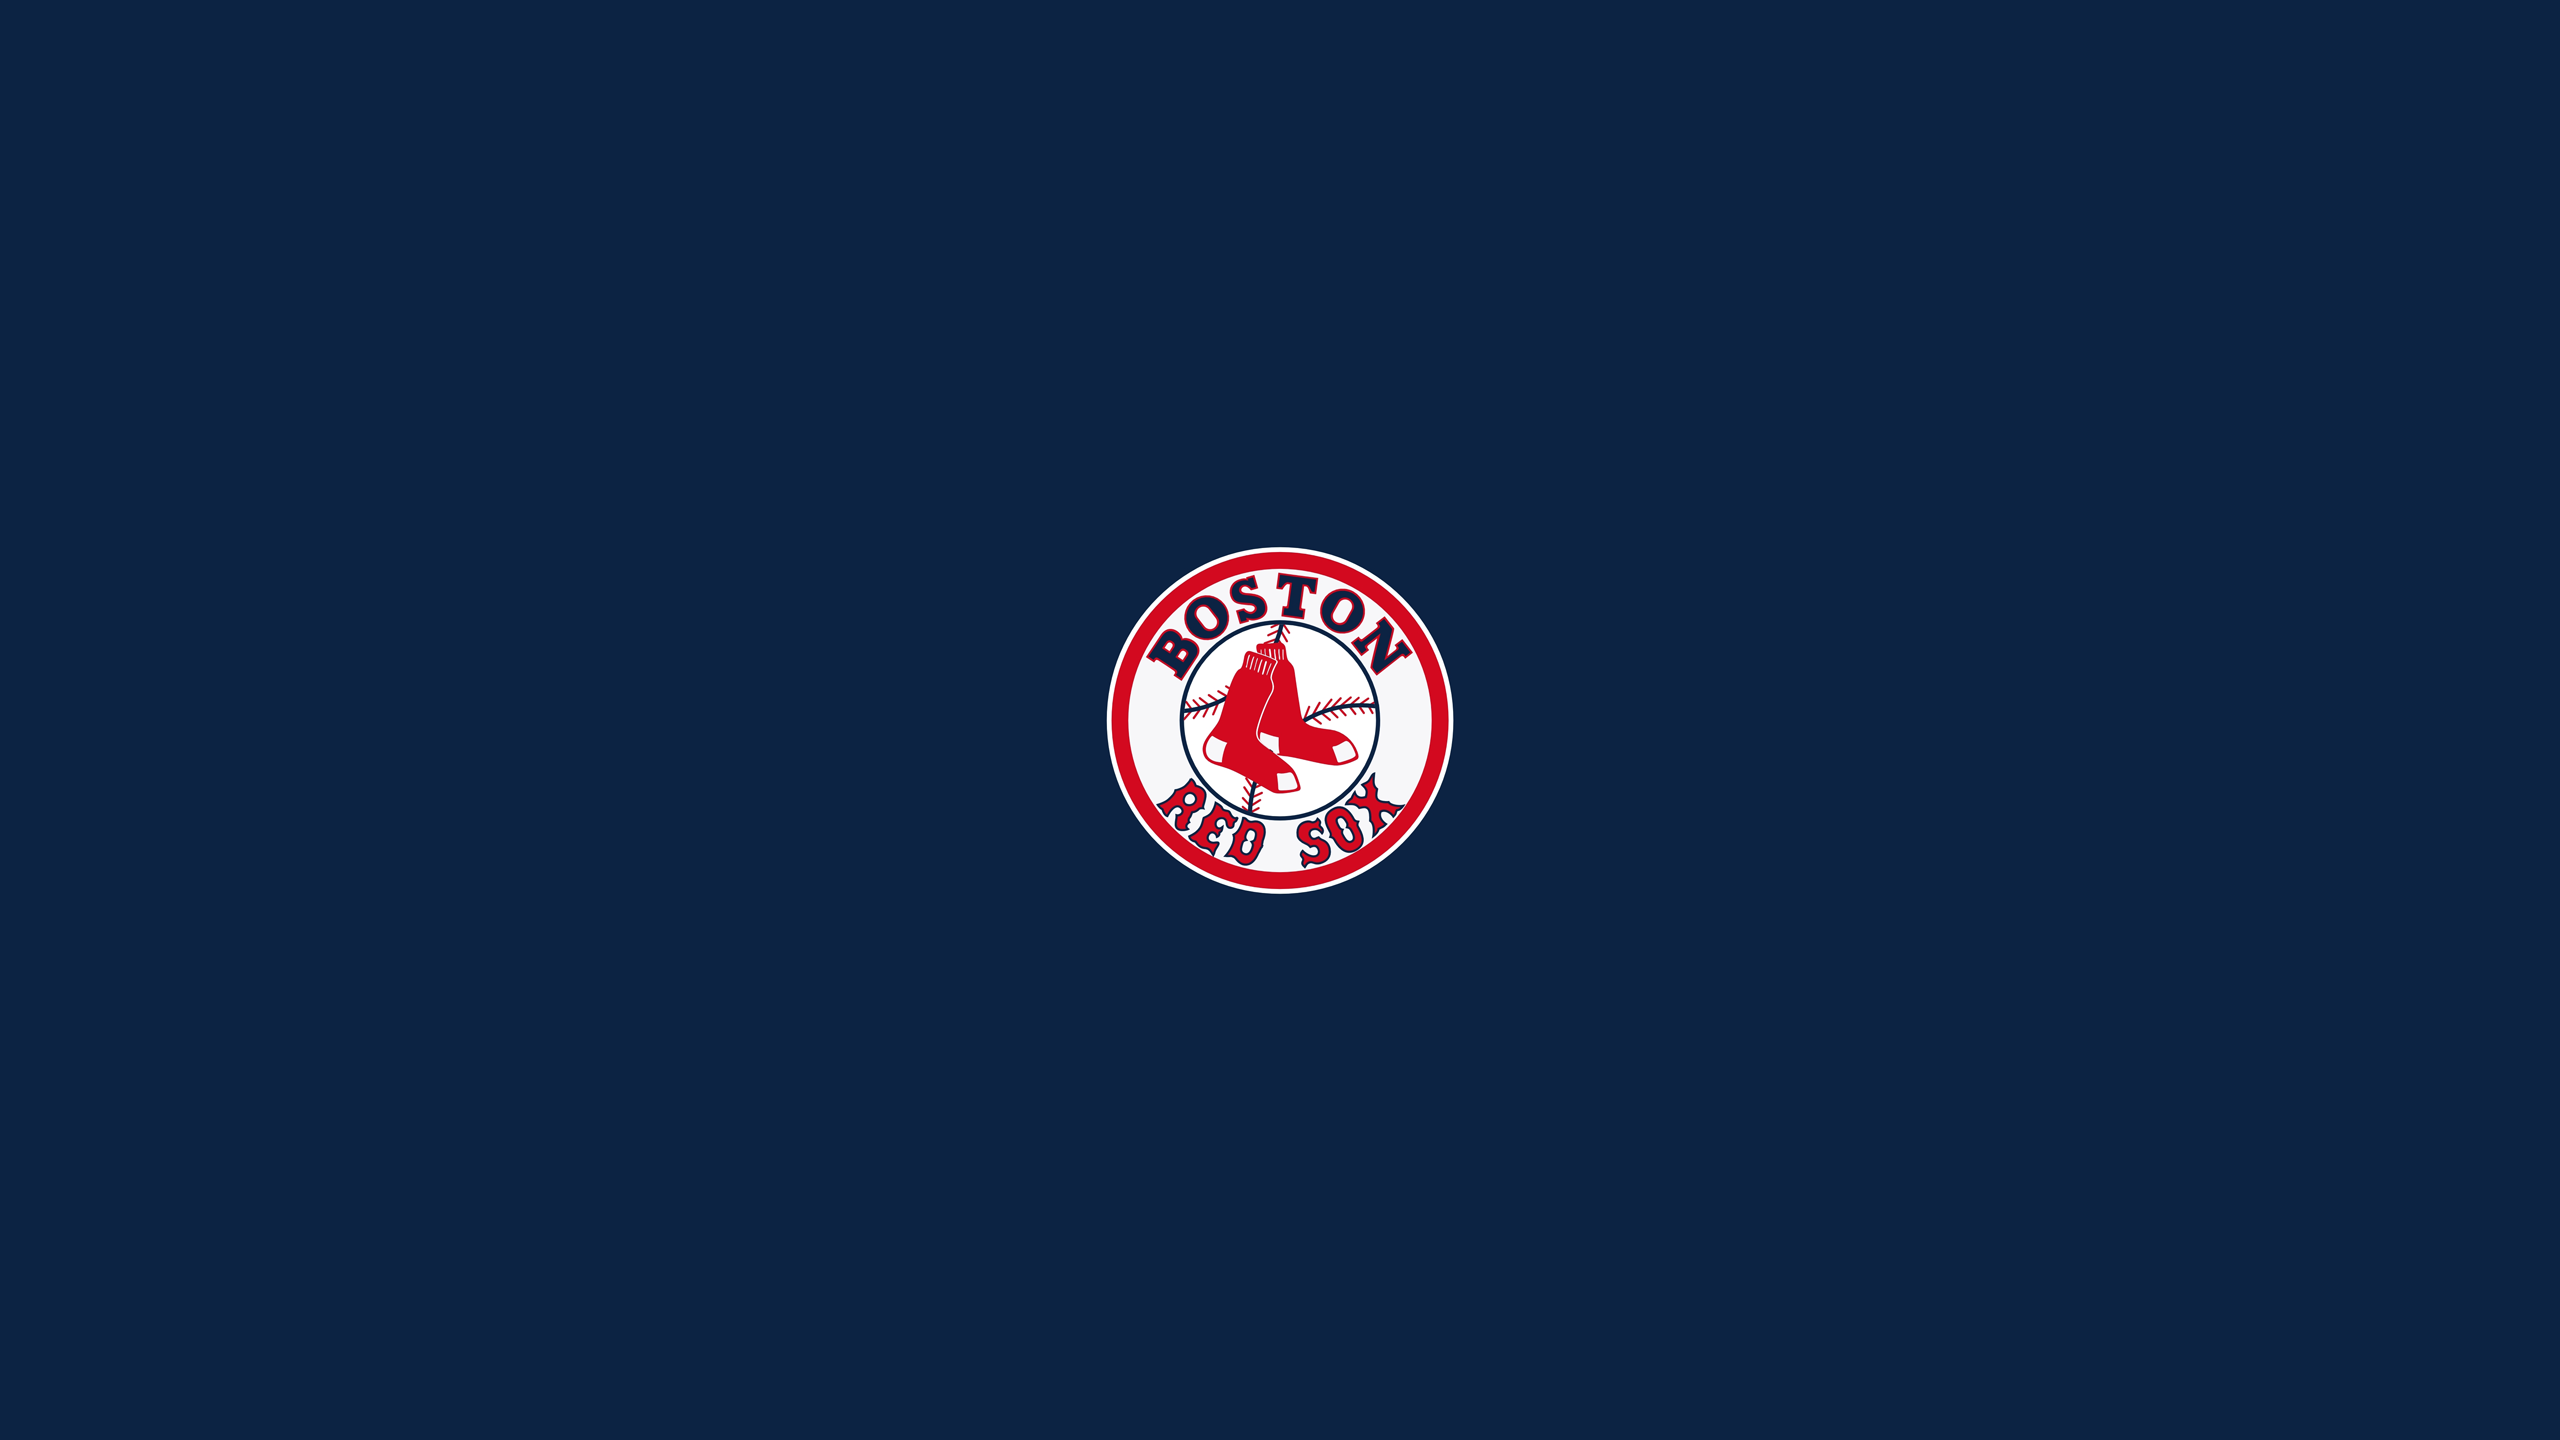 Boston Red Sox HD background Boston Red Sox wallpapers 2560x1440